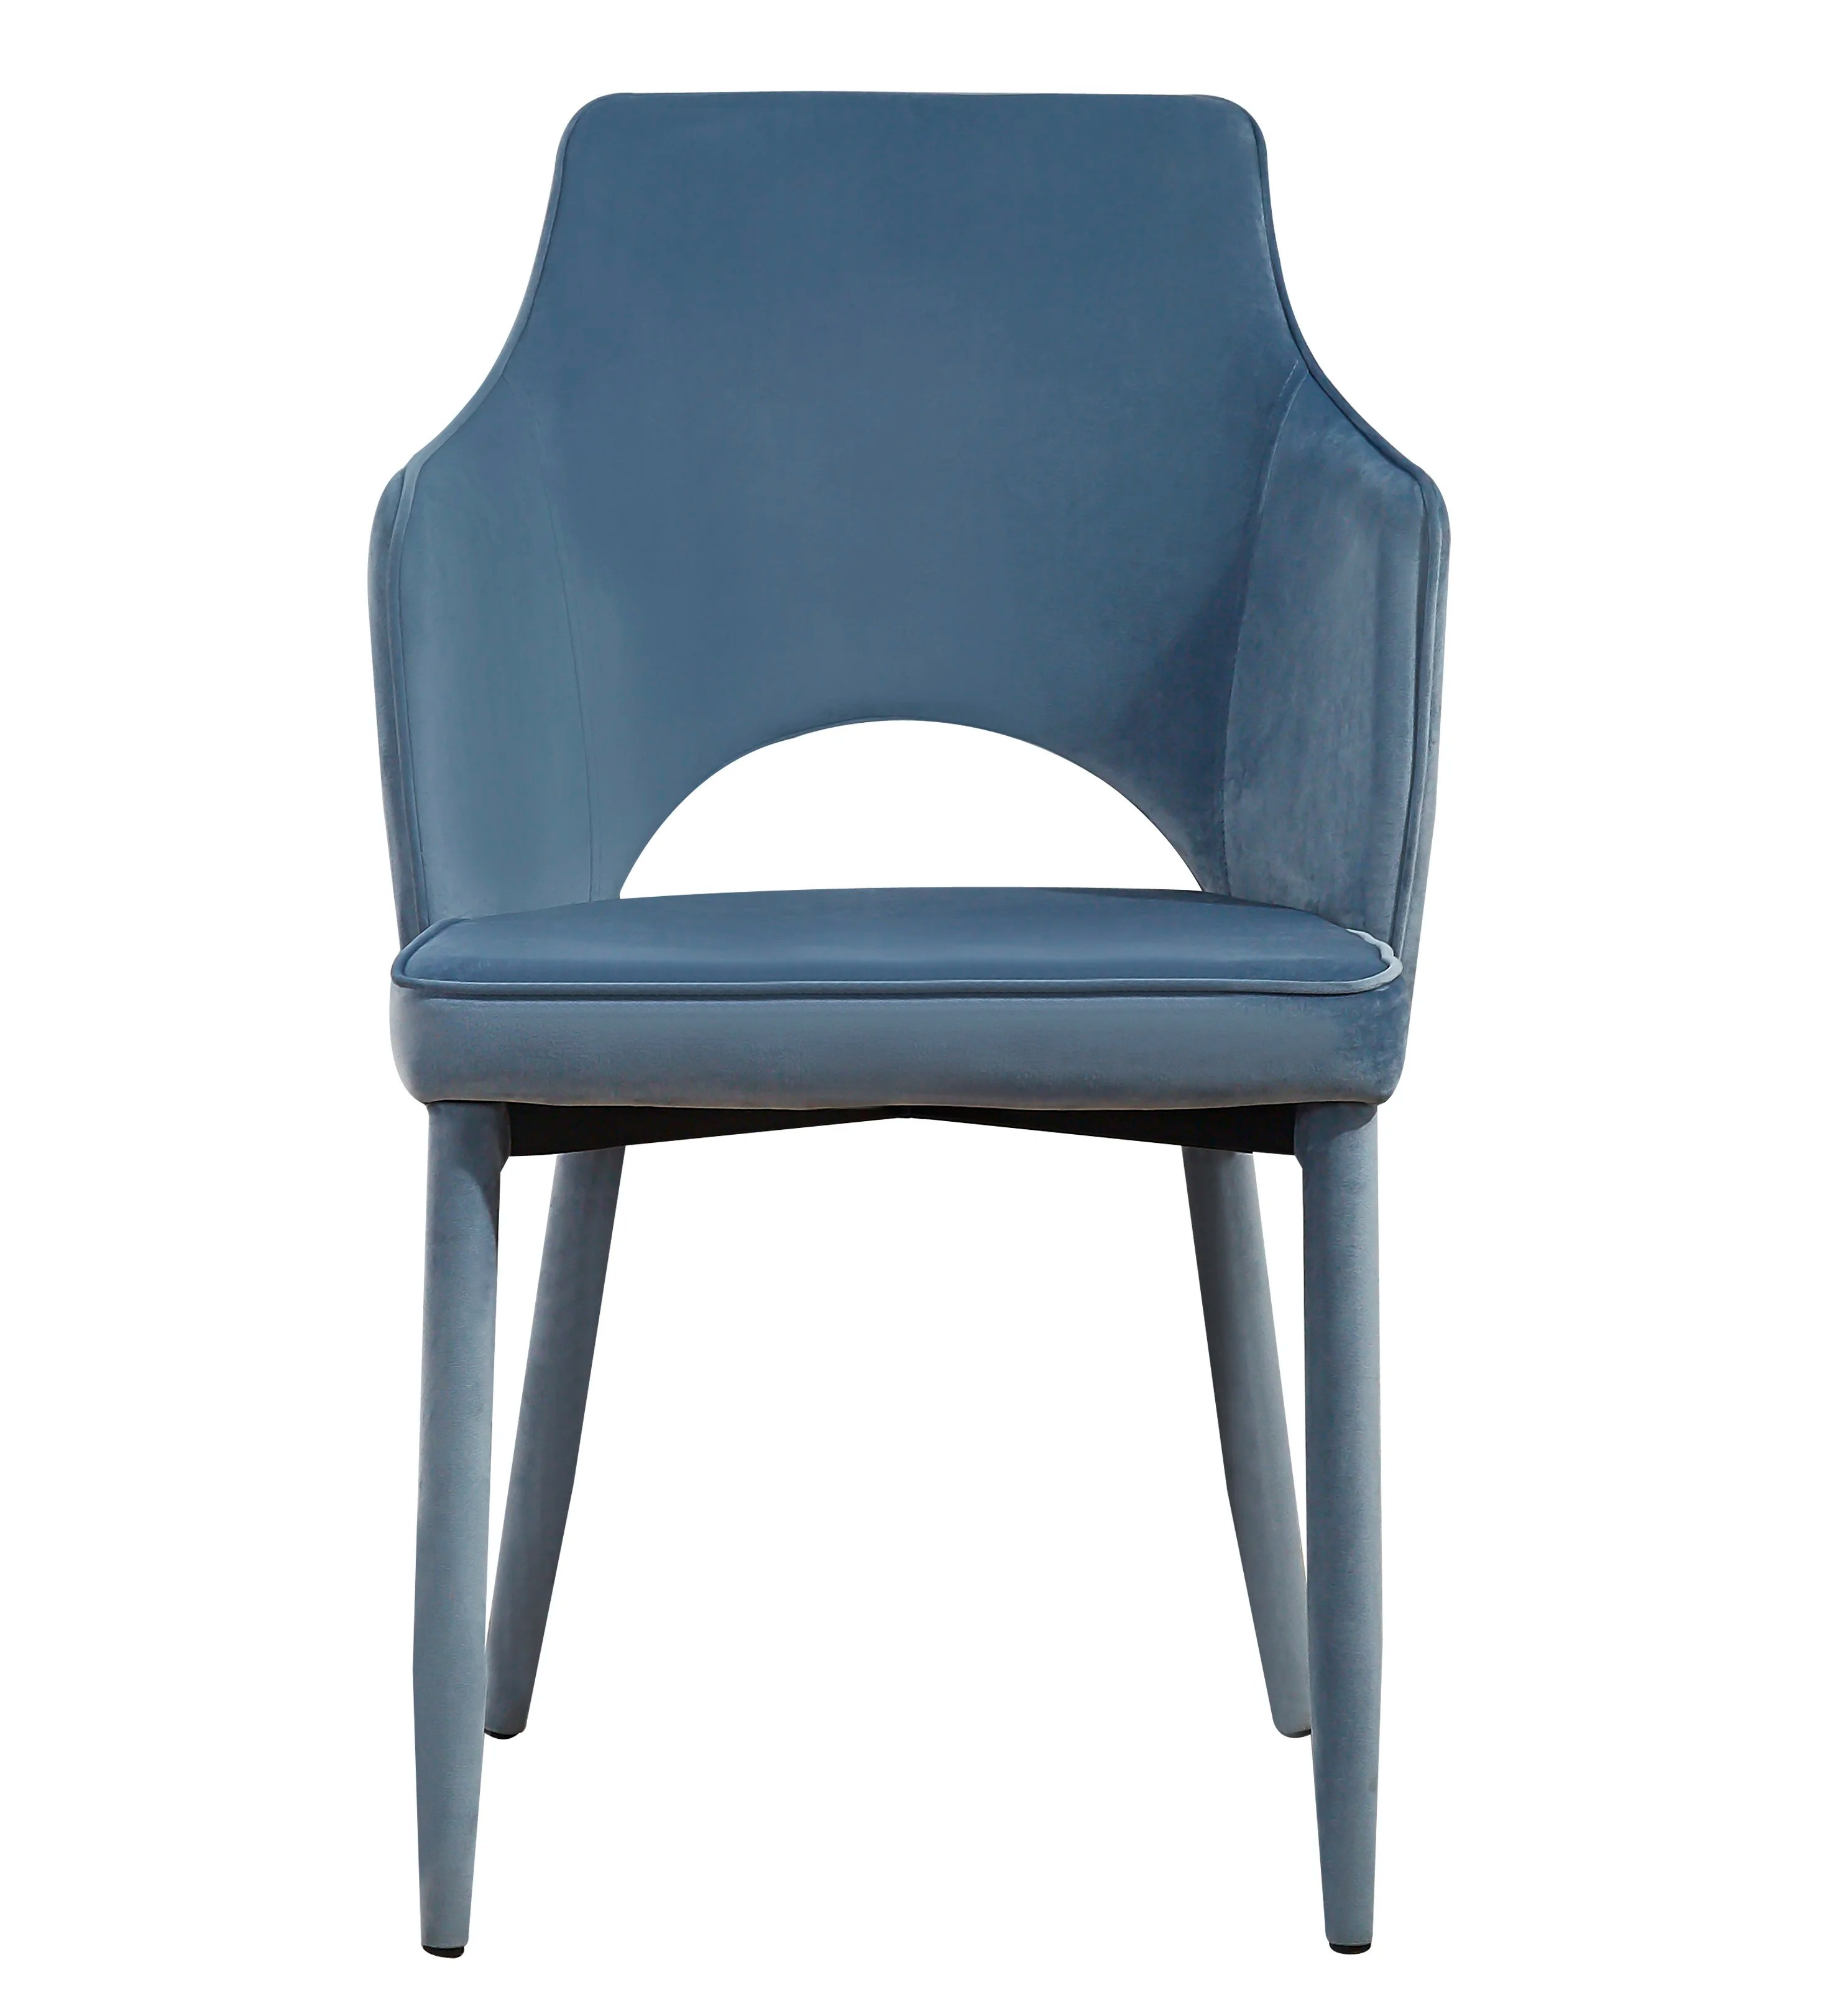 Outdoor Hartwig Hartwig Upholstered Dining Chair